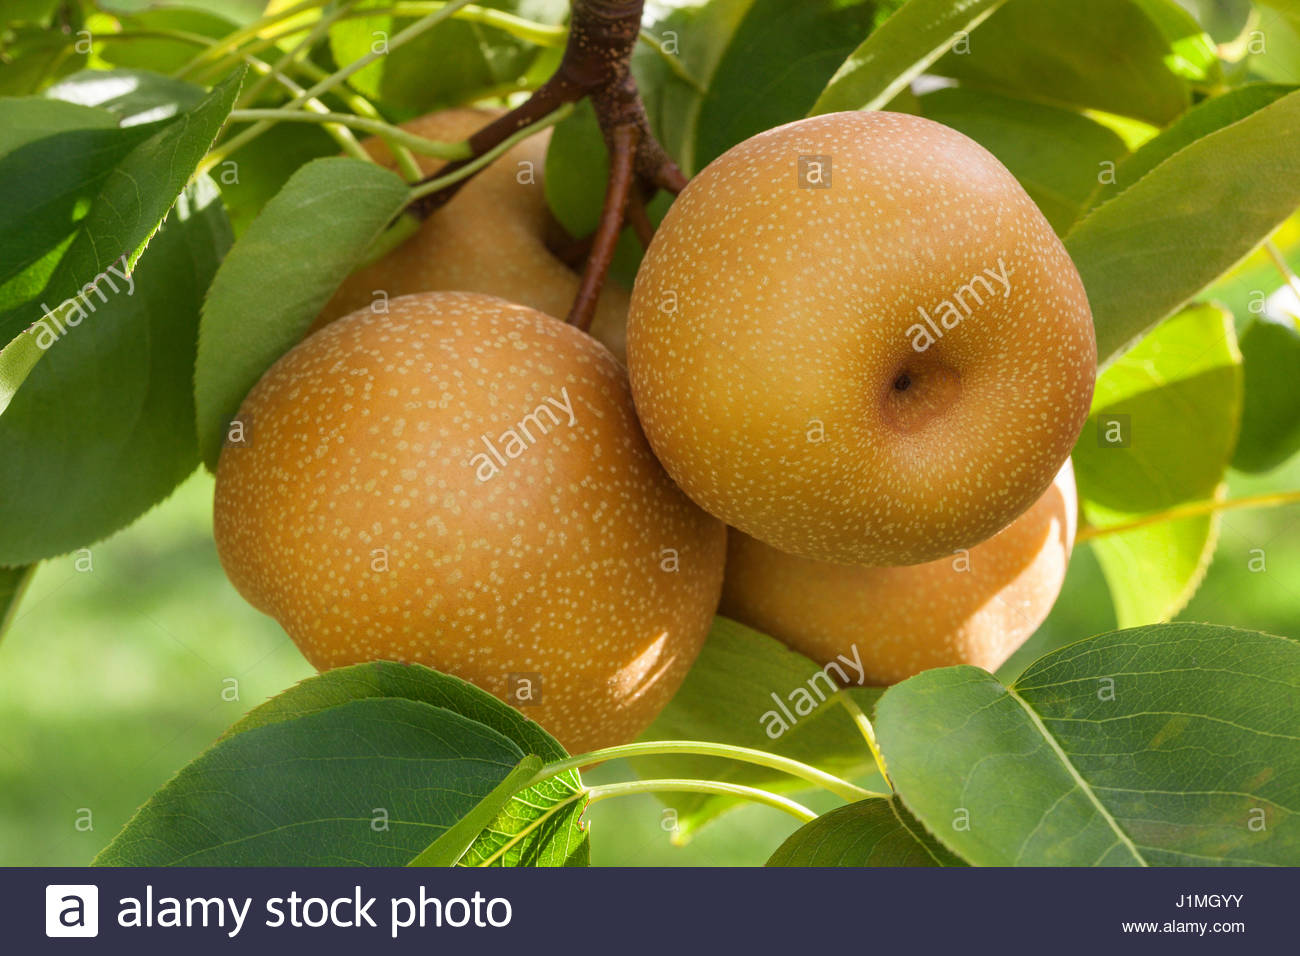 Shinko asian pear edible landscaping - Pyrus Pyrifolia Asian Pear Nitaka On Tree Stock Image